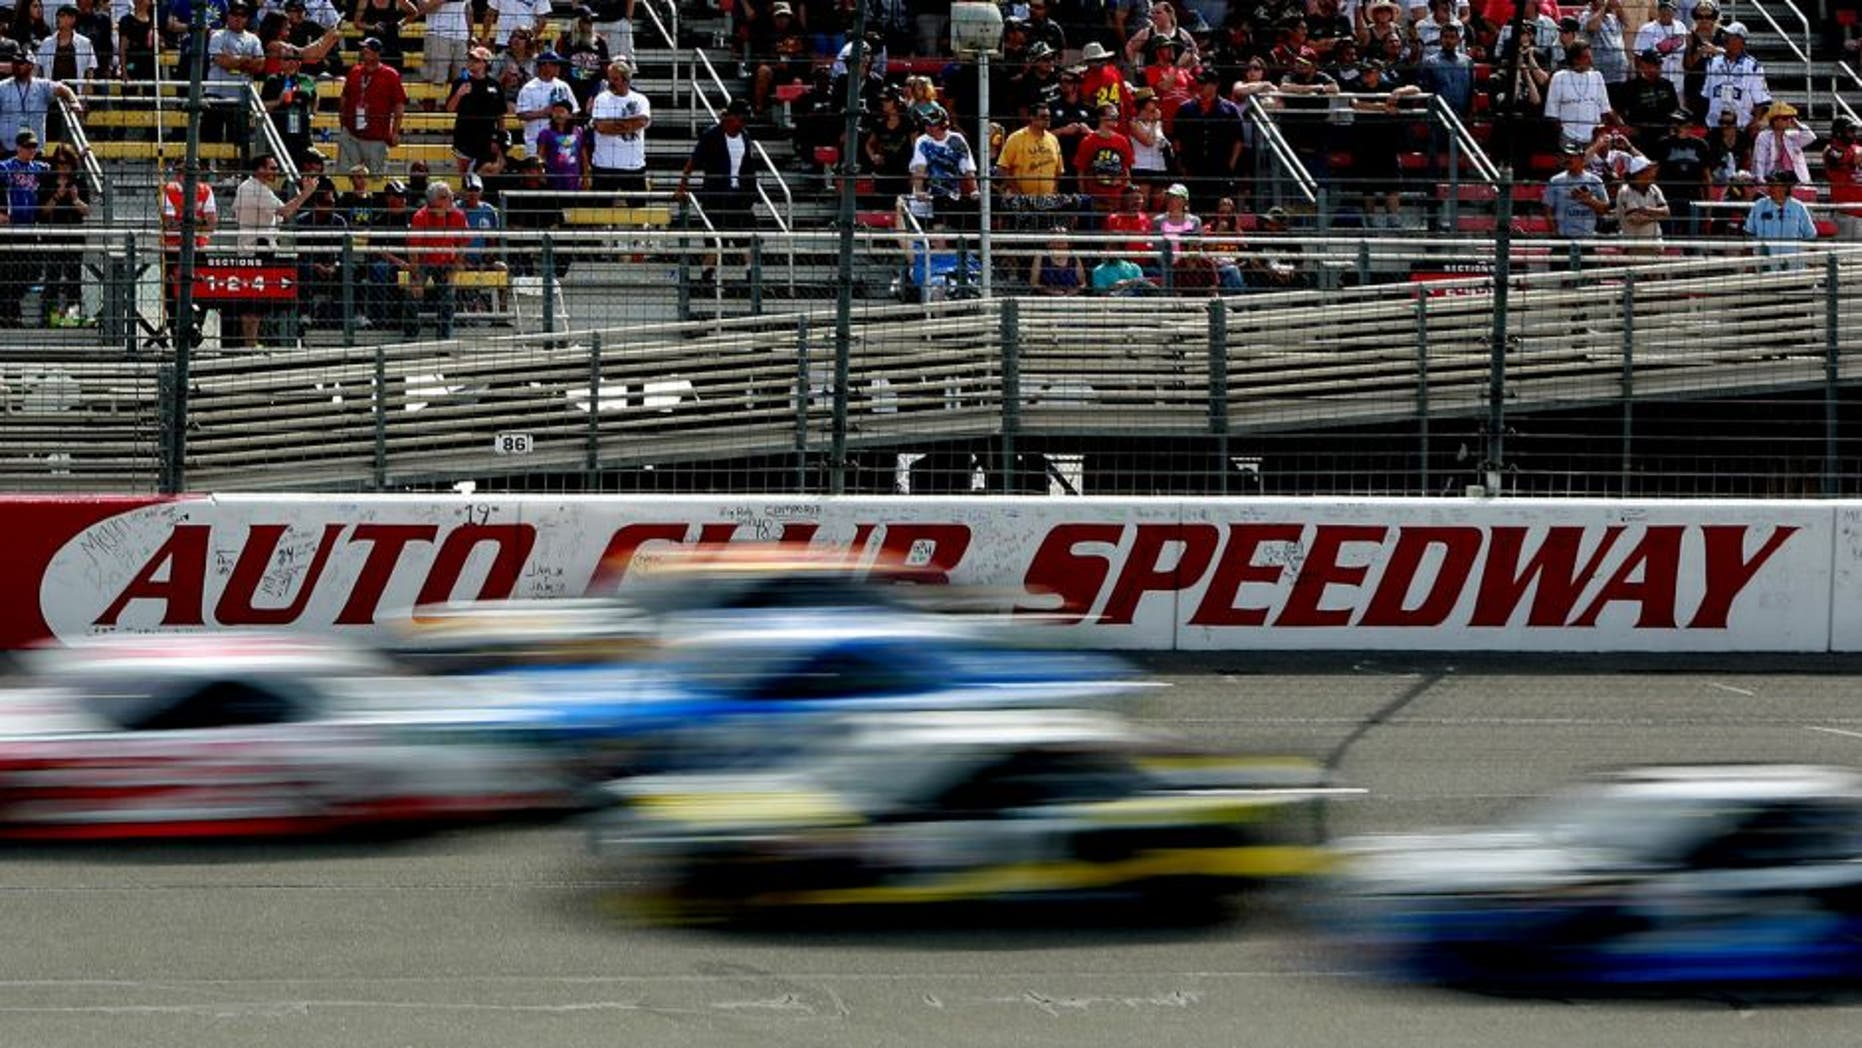 FONTANA, CA - MARCH 22: A view of cars racing during the NASCAR Sprint Cup Series Auto Club 400 at Auto Club Speedway on March 22, 2015 in Fontana, California. (Photo by Jerry Markland/Getty Images)